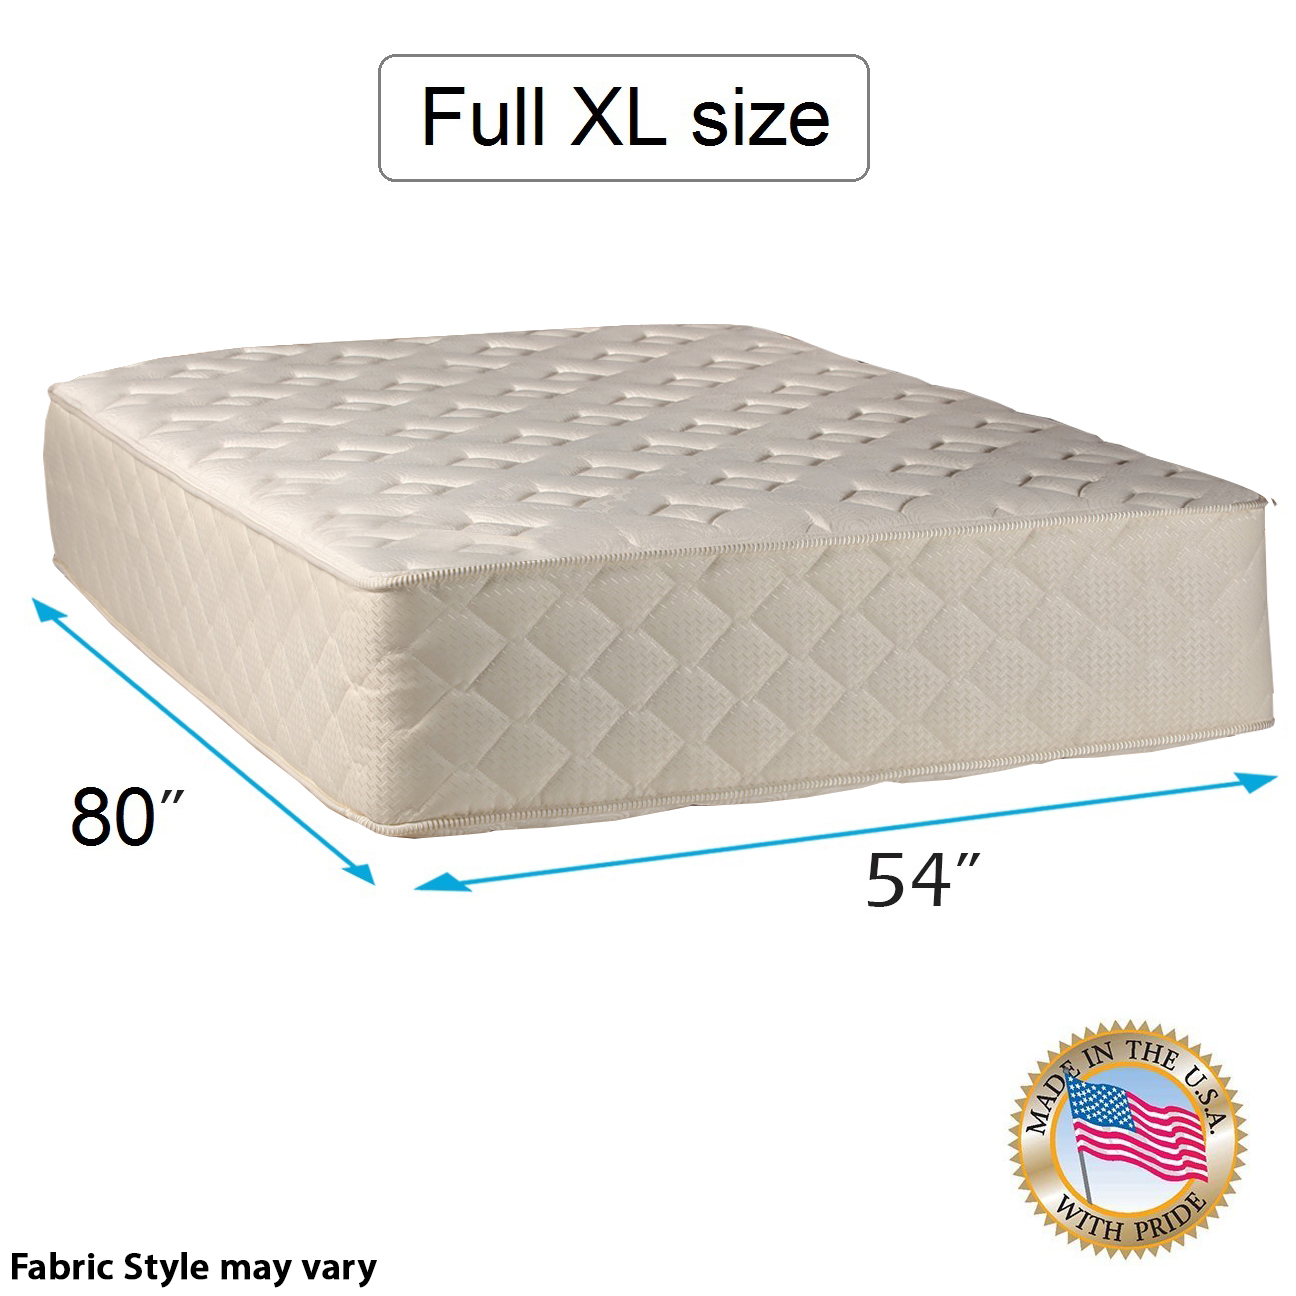 "Highlight Luxury Firm Full XL Size (54""x80""x14"") Mattress Only - Fully Assembled - Spinal Back Support, Innerspring Coils, Premium edge guards, Longlasting Comfort by Dream Solutions USA"